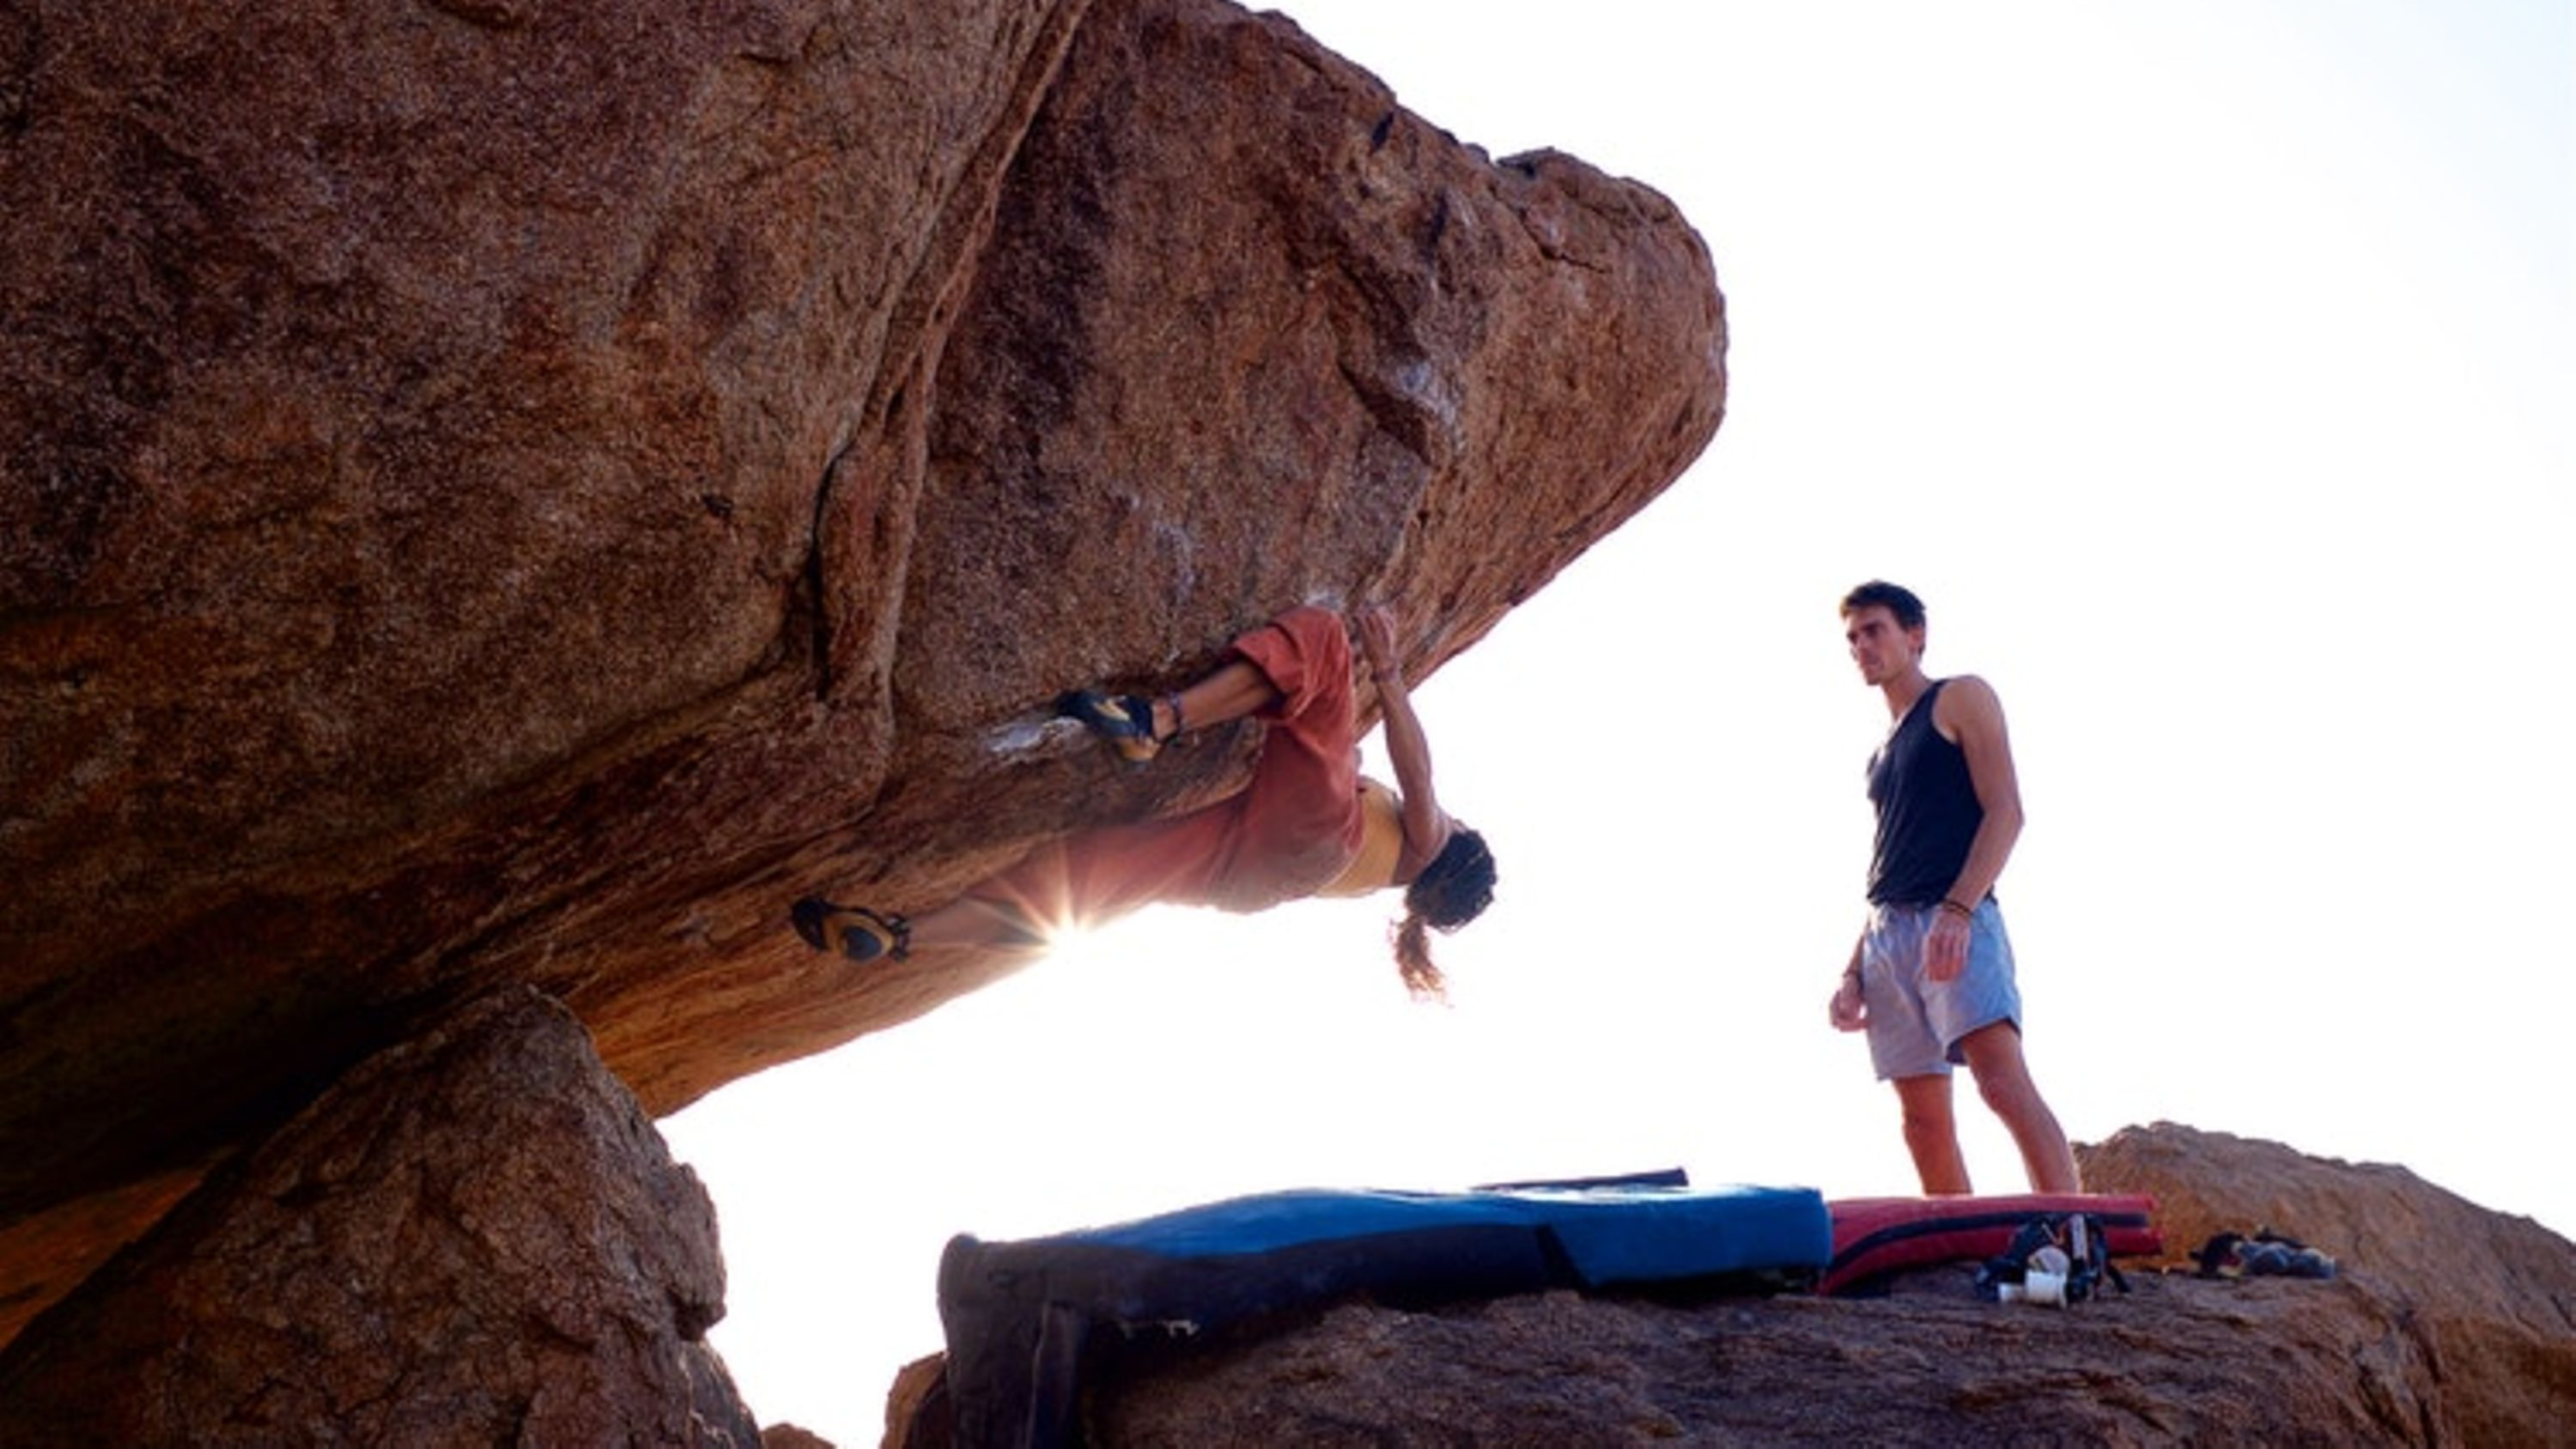 2 climbers, one secures, while the other climbs a rock